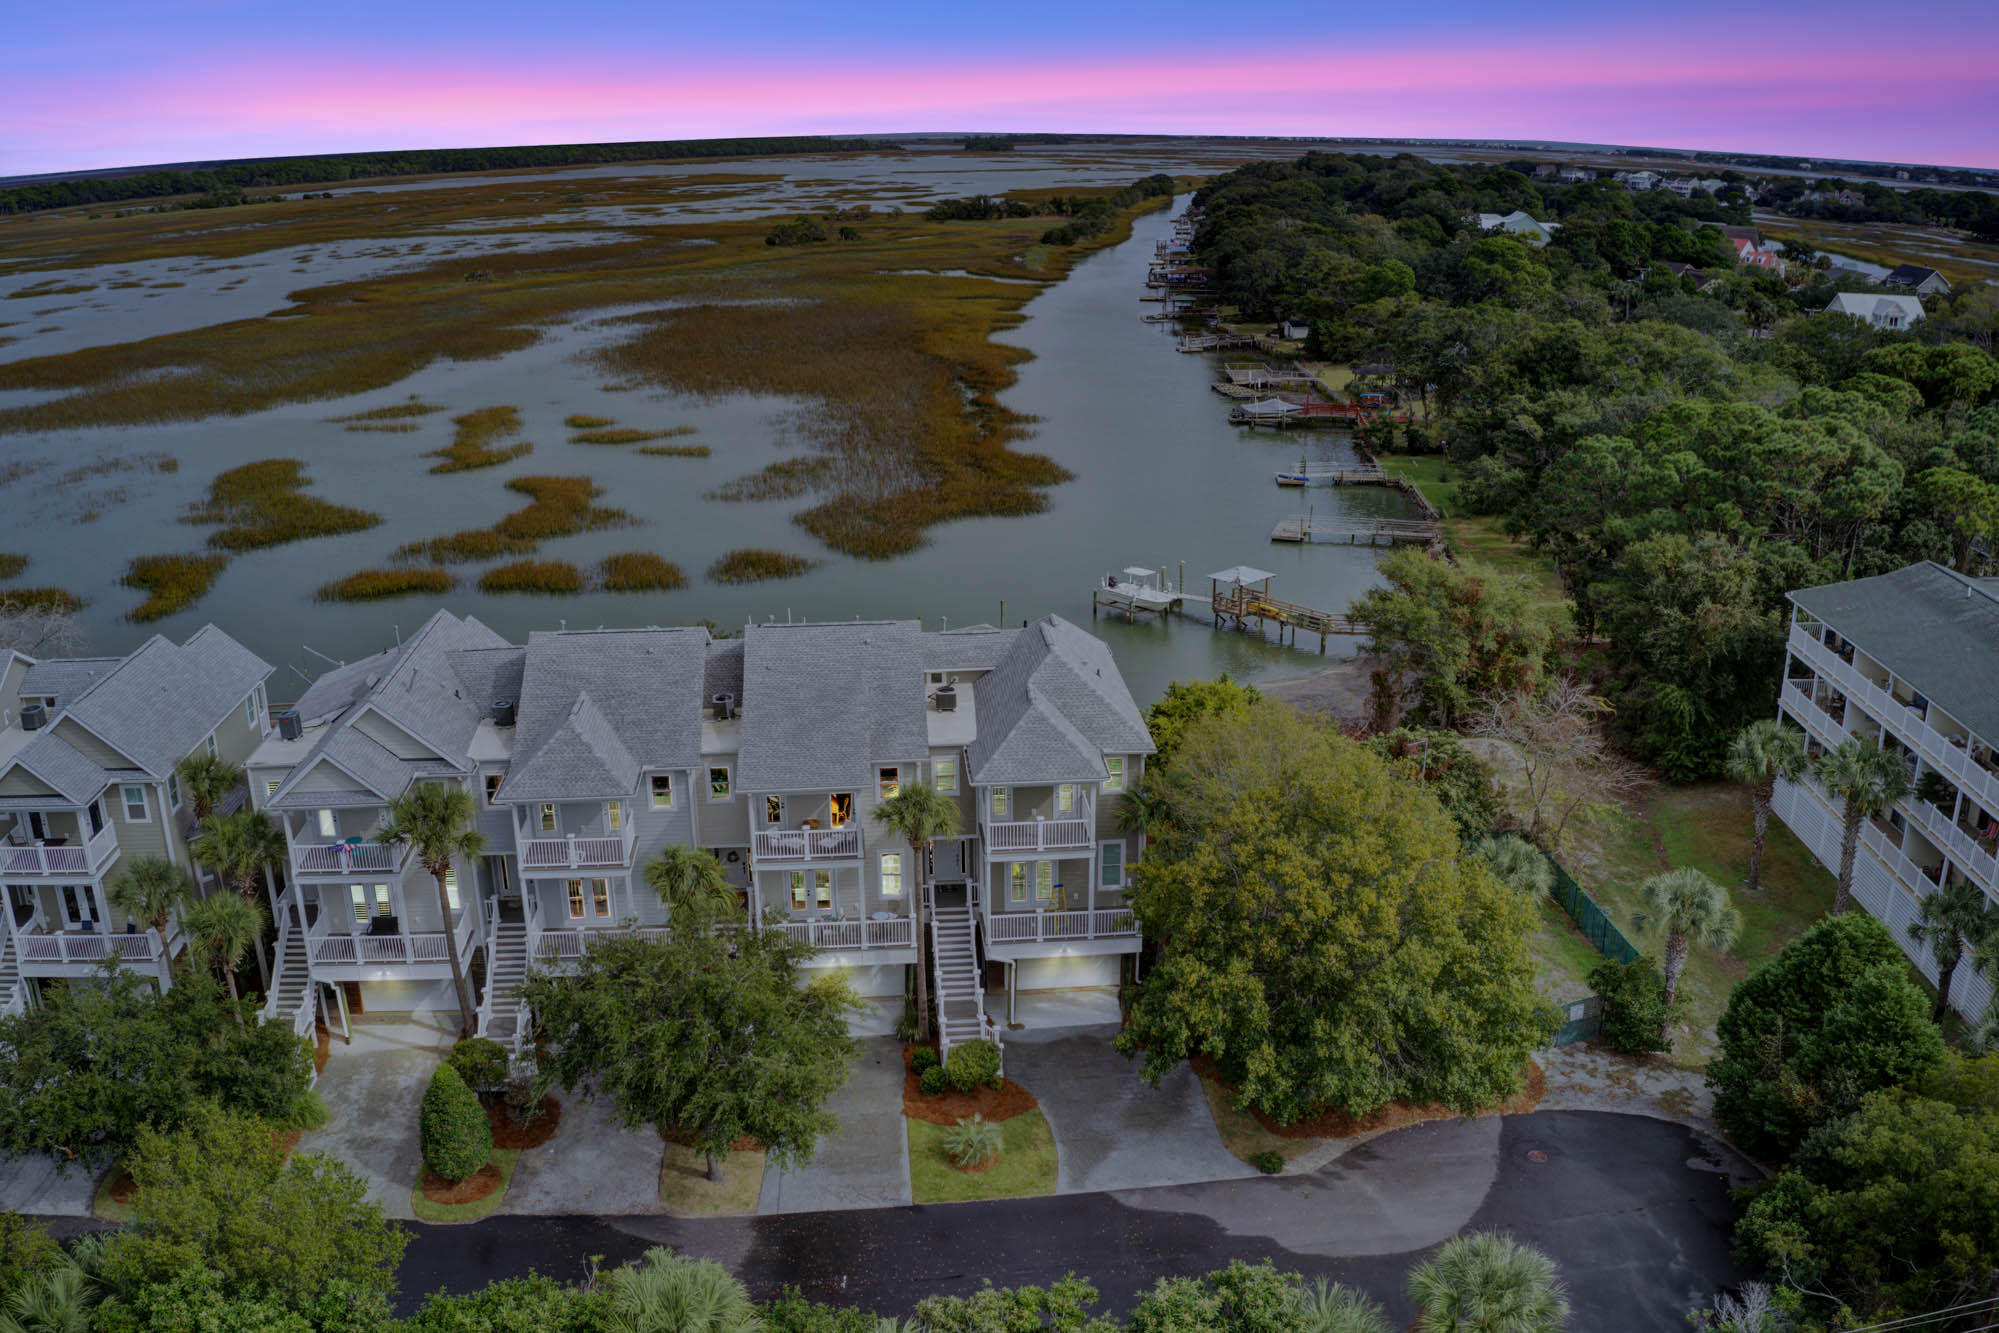 Folly Creek Place Homes For Sale - 2240 Folly, Folly Beach, SC - 2